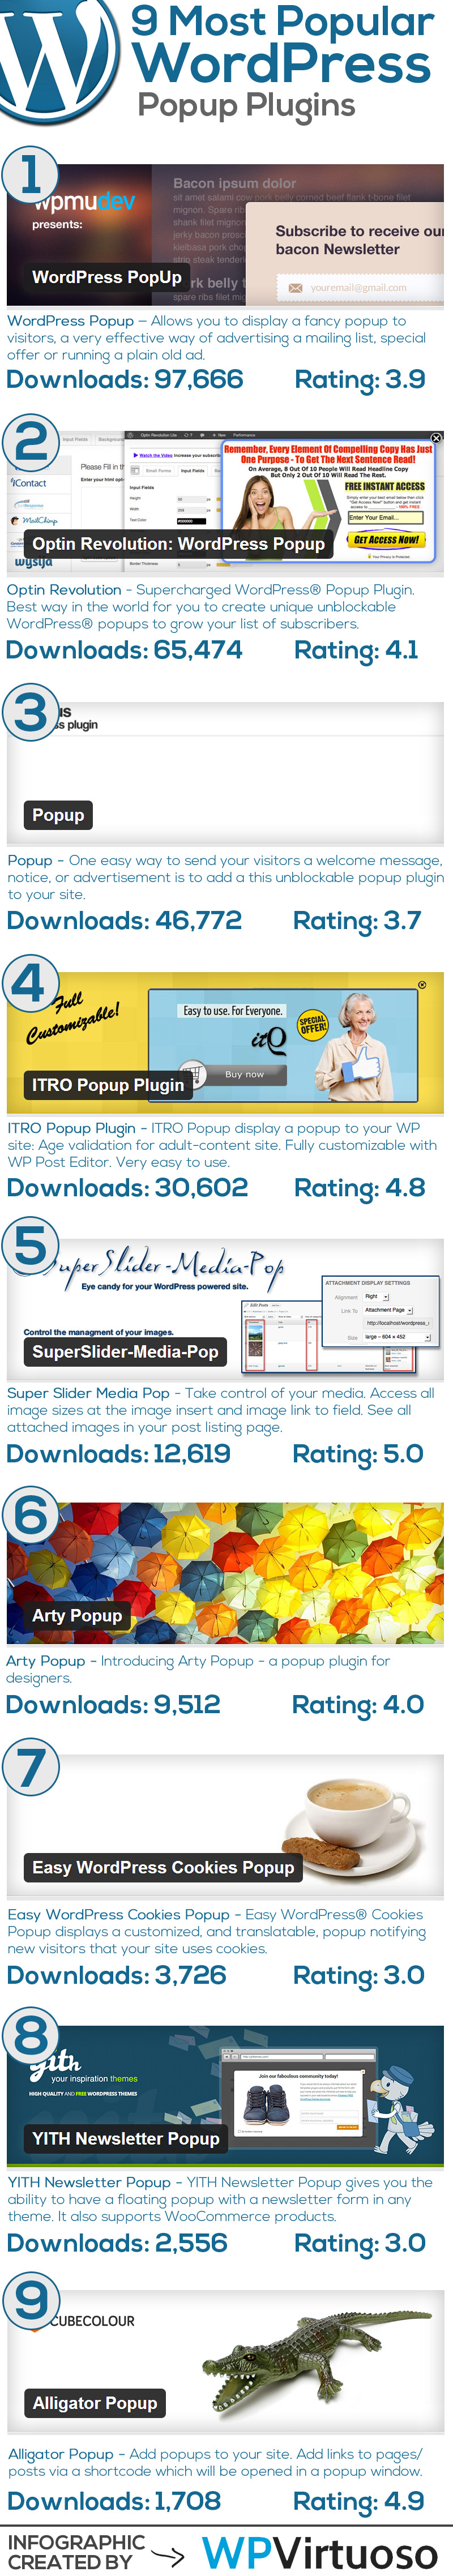 Best-Wordpress-Popup-Plugins-Infographic